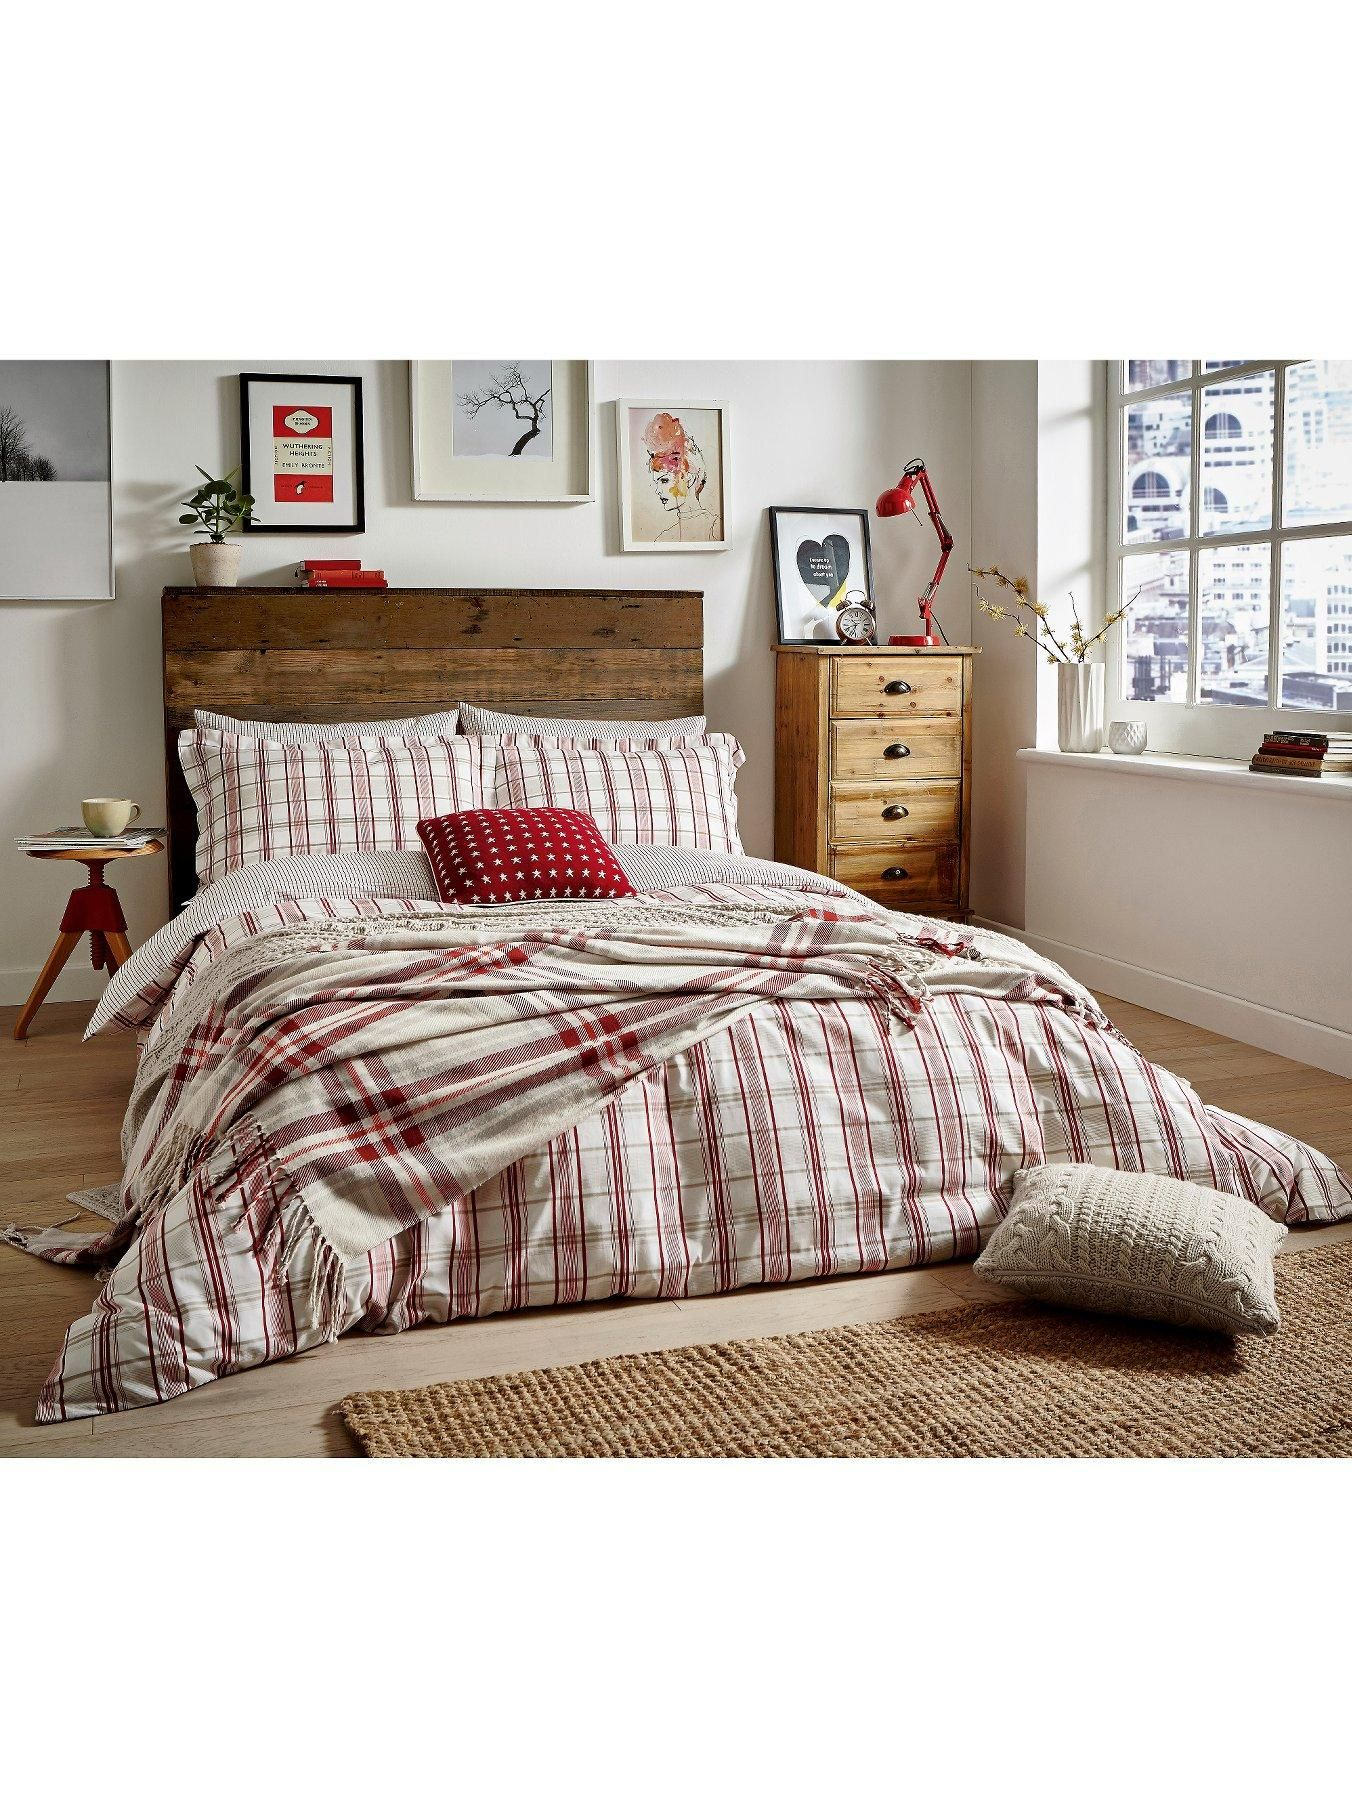 Pea Blue Carter Duvet Cover Set In Single Double And King Sizesa Clic Red Beige Tartan Design Lends This A Sense Of Impeccable